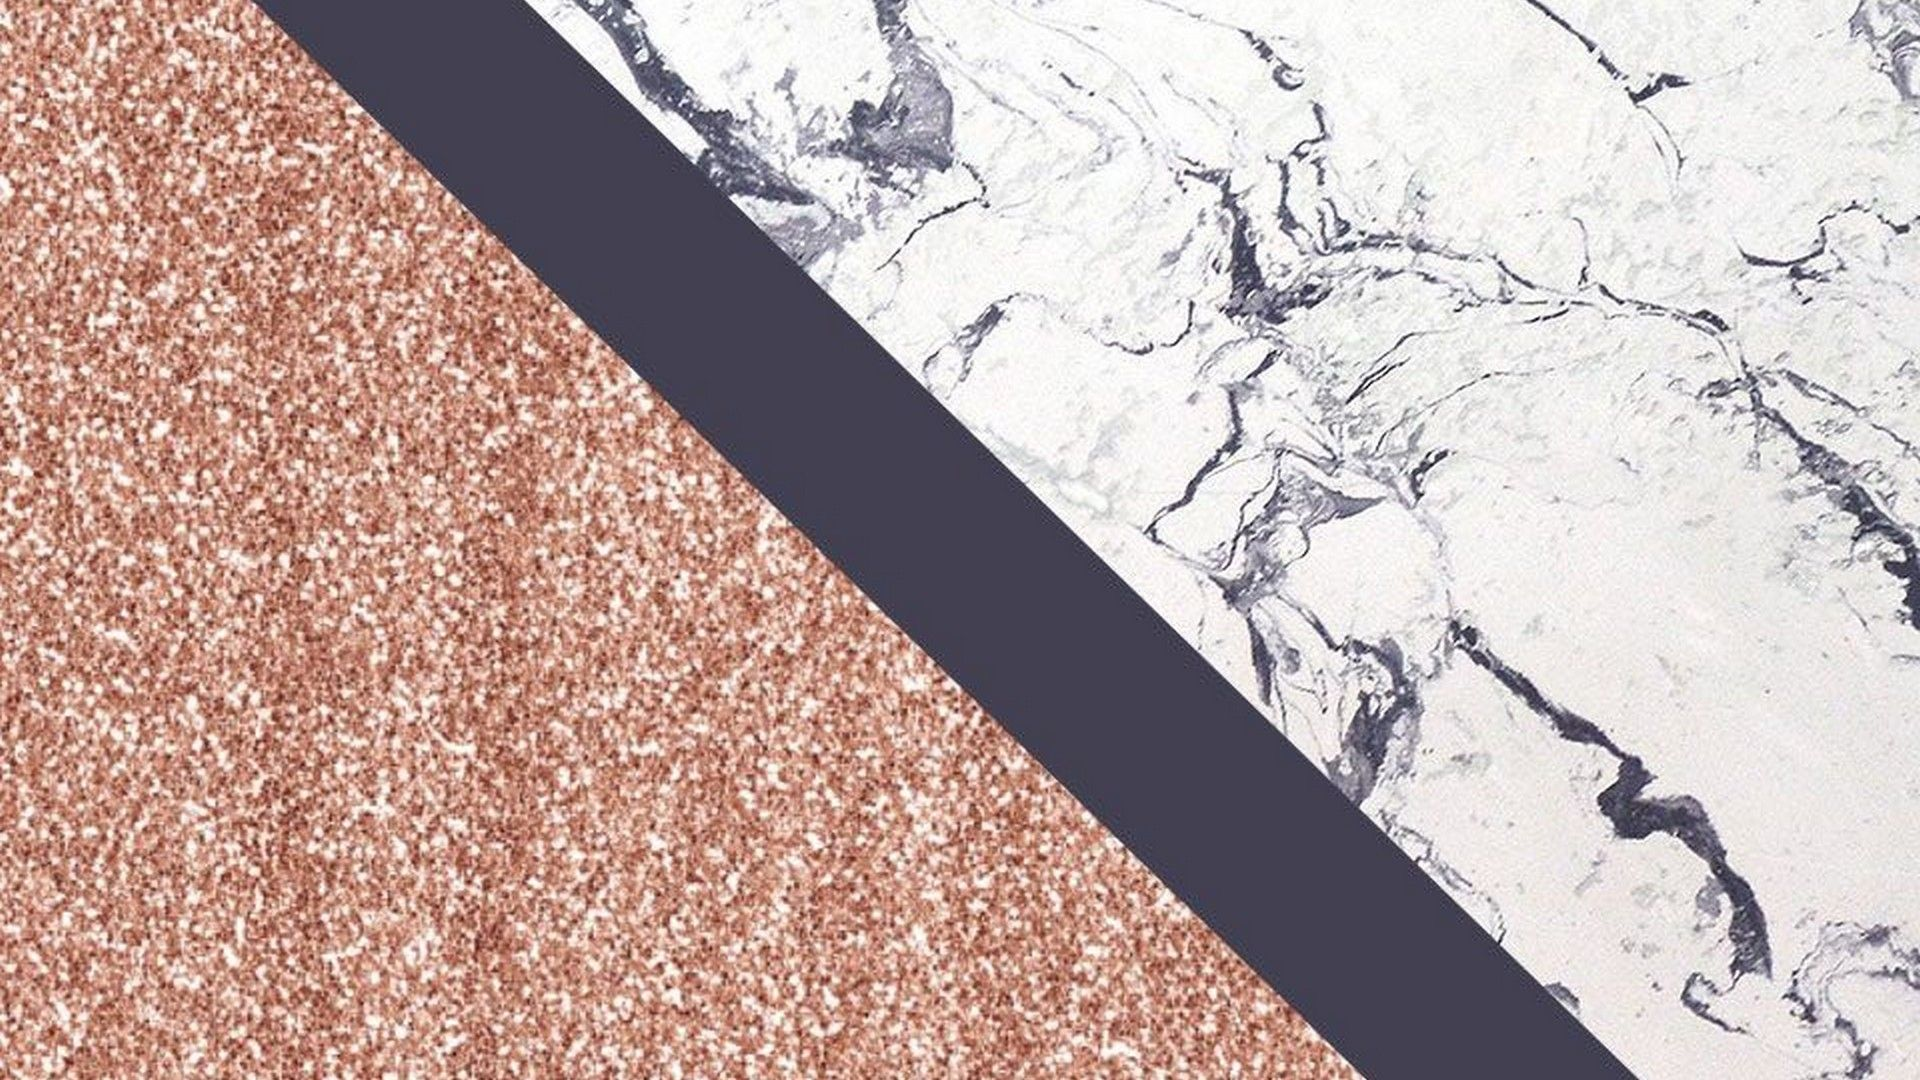 Rose Gold Marble Desktop Backgrounds Hd Best Hd Wallpapers Marble Desktop Wallpaper Rose Gold Wallpaper Rose Gold Backgrounds